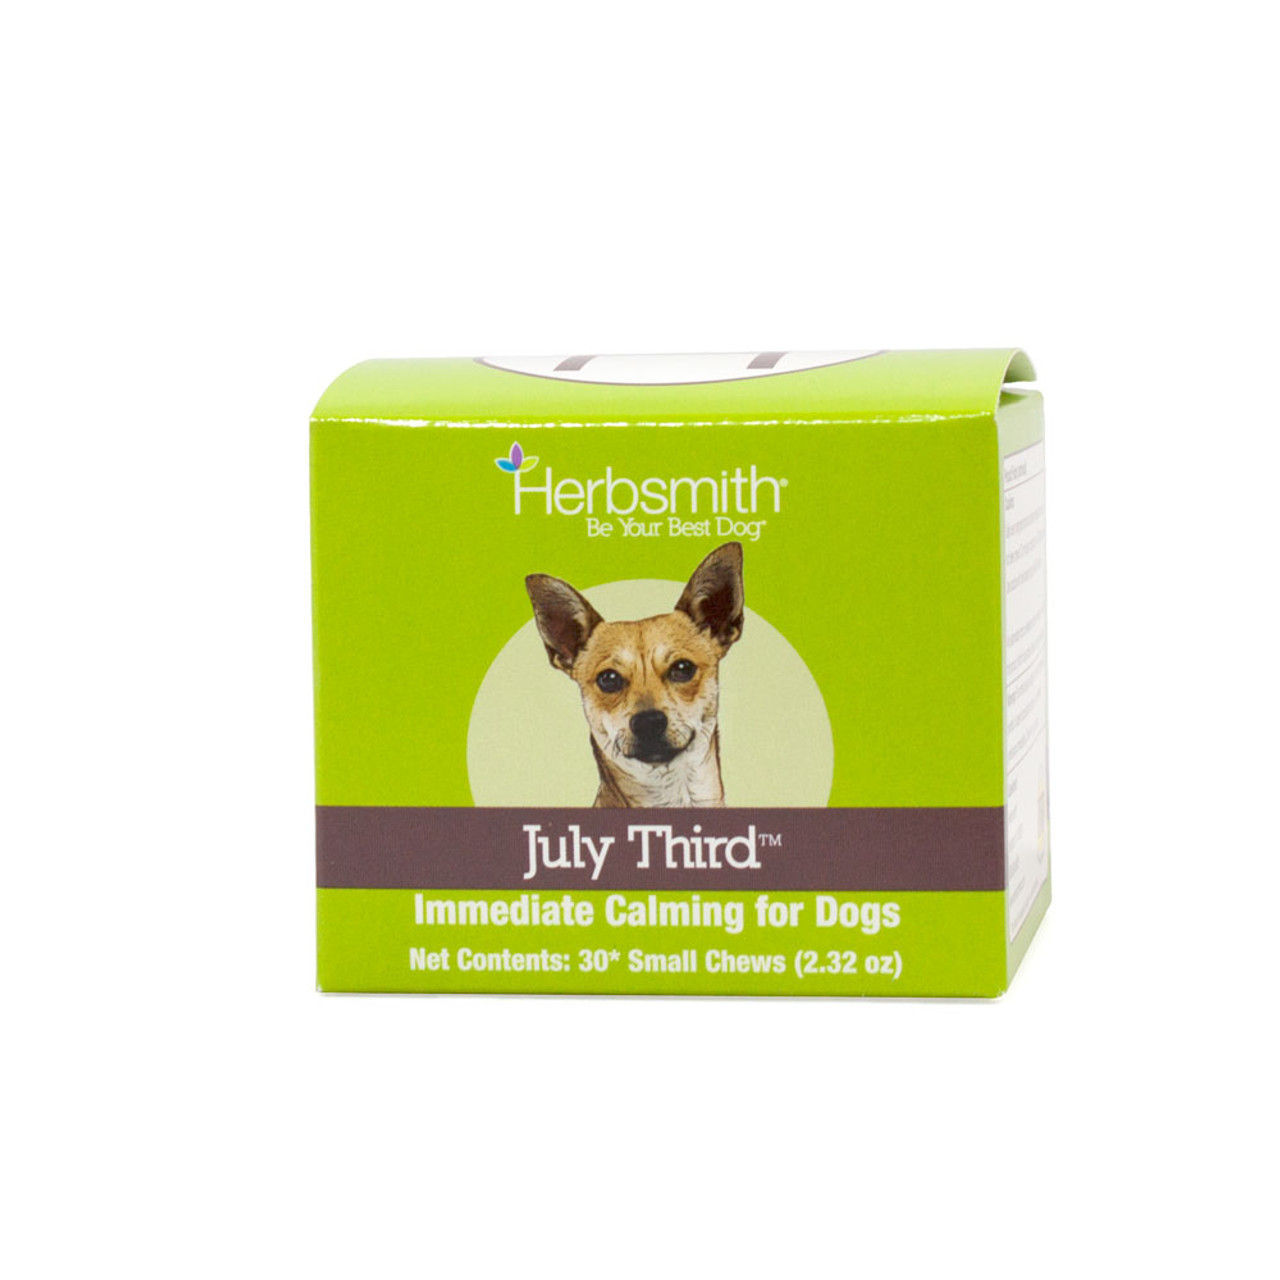 Herbsmith July Third Calming Supplement for Small Dogs